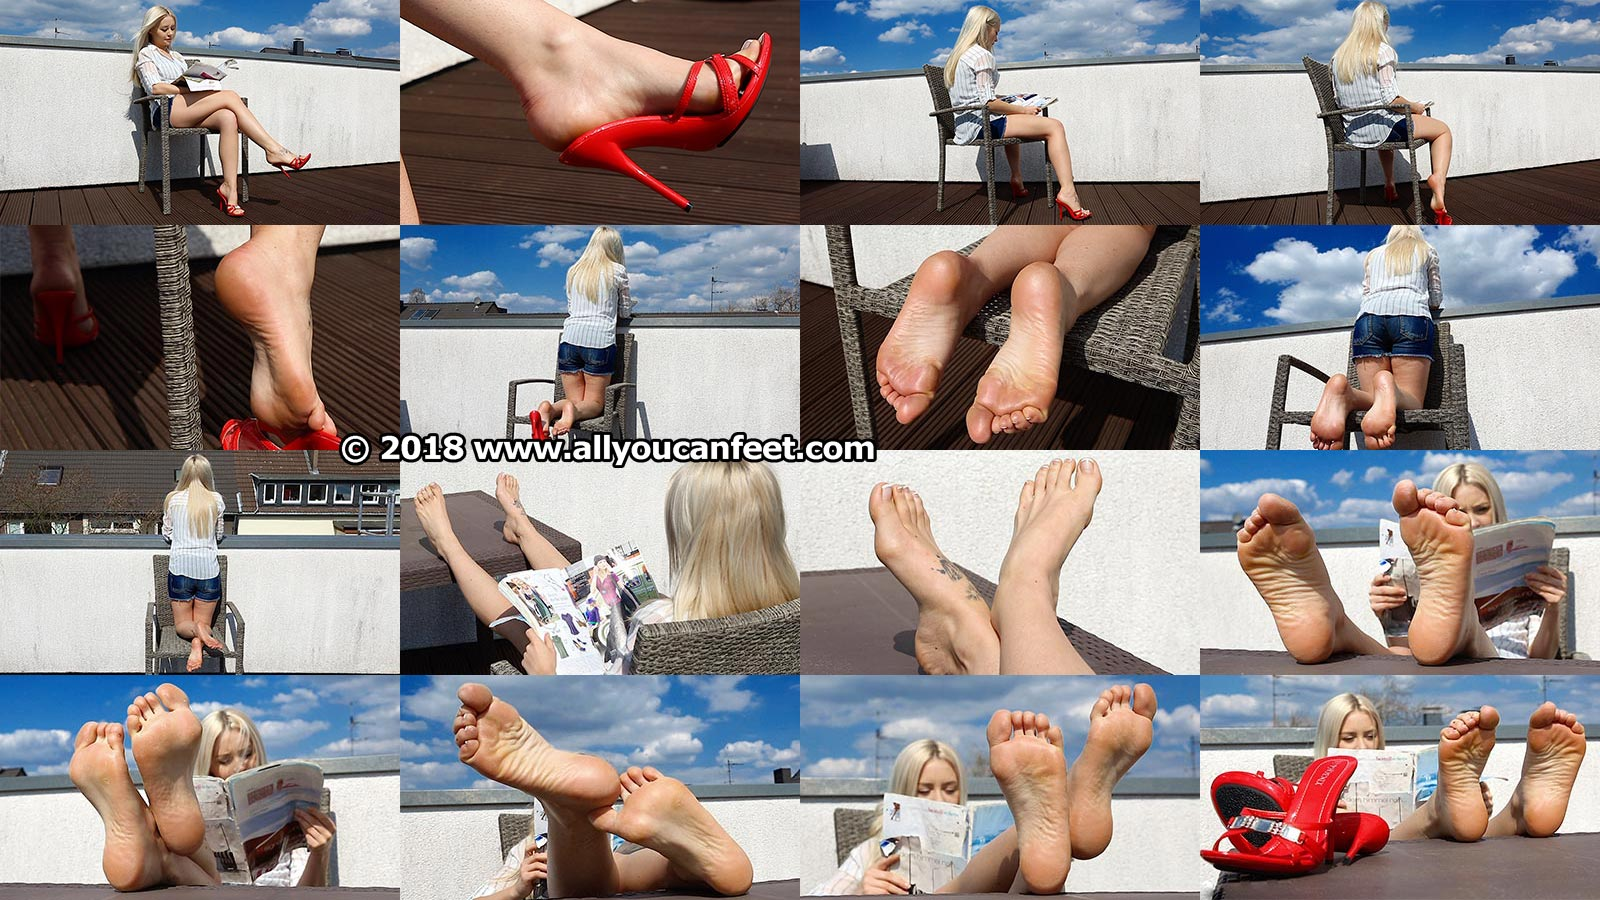 big preview pic from set 2497 showing Allyoucanfeet model Aubrey